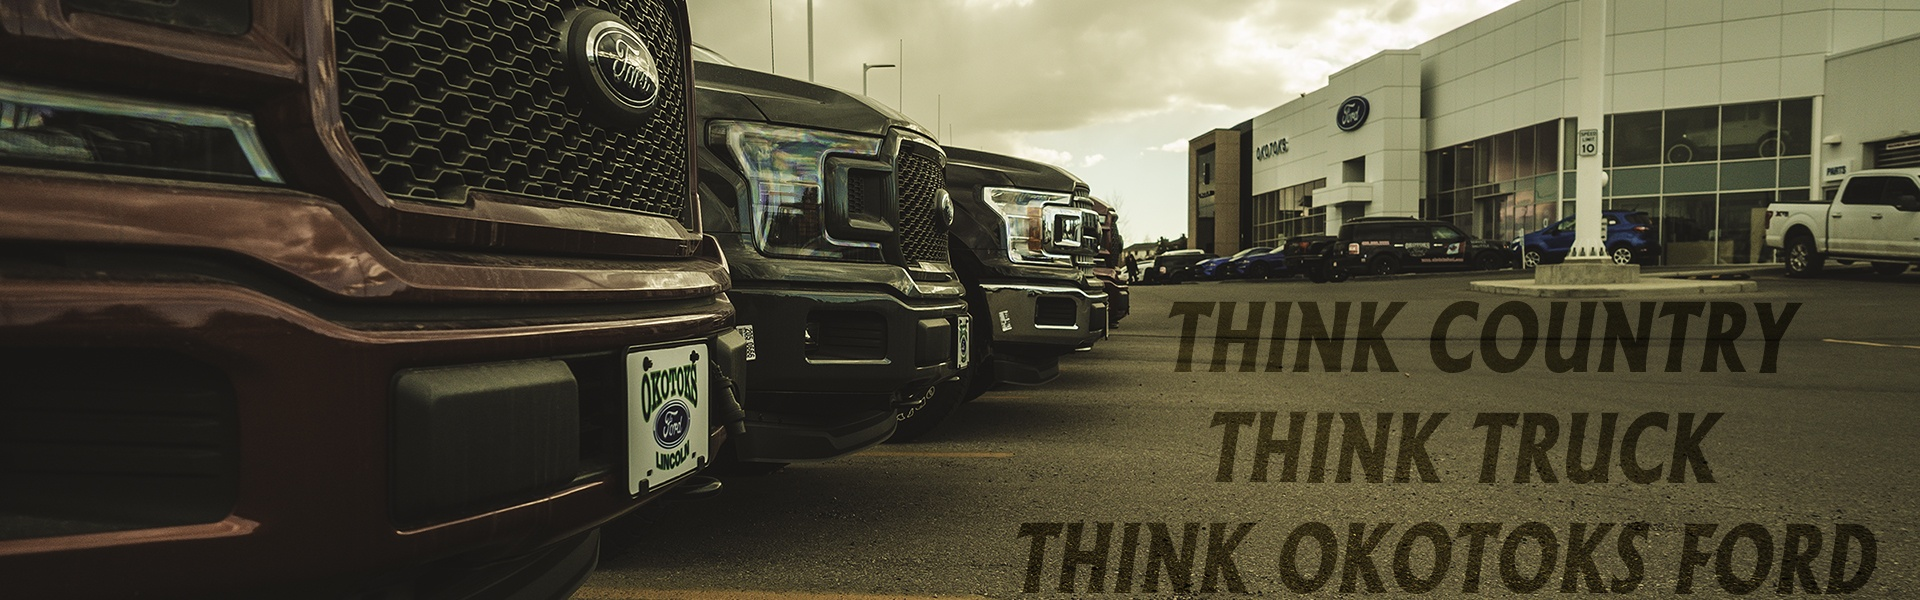 Think Country, Think Truck, Think Okotoks Ford